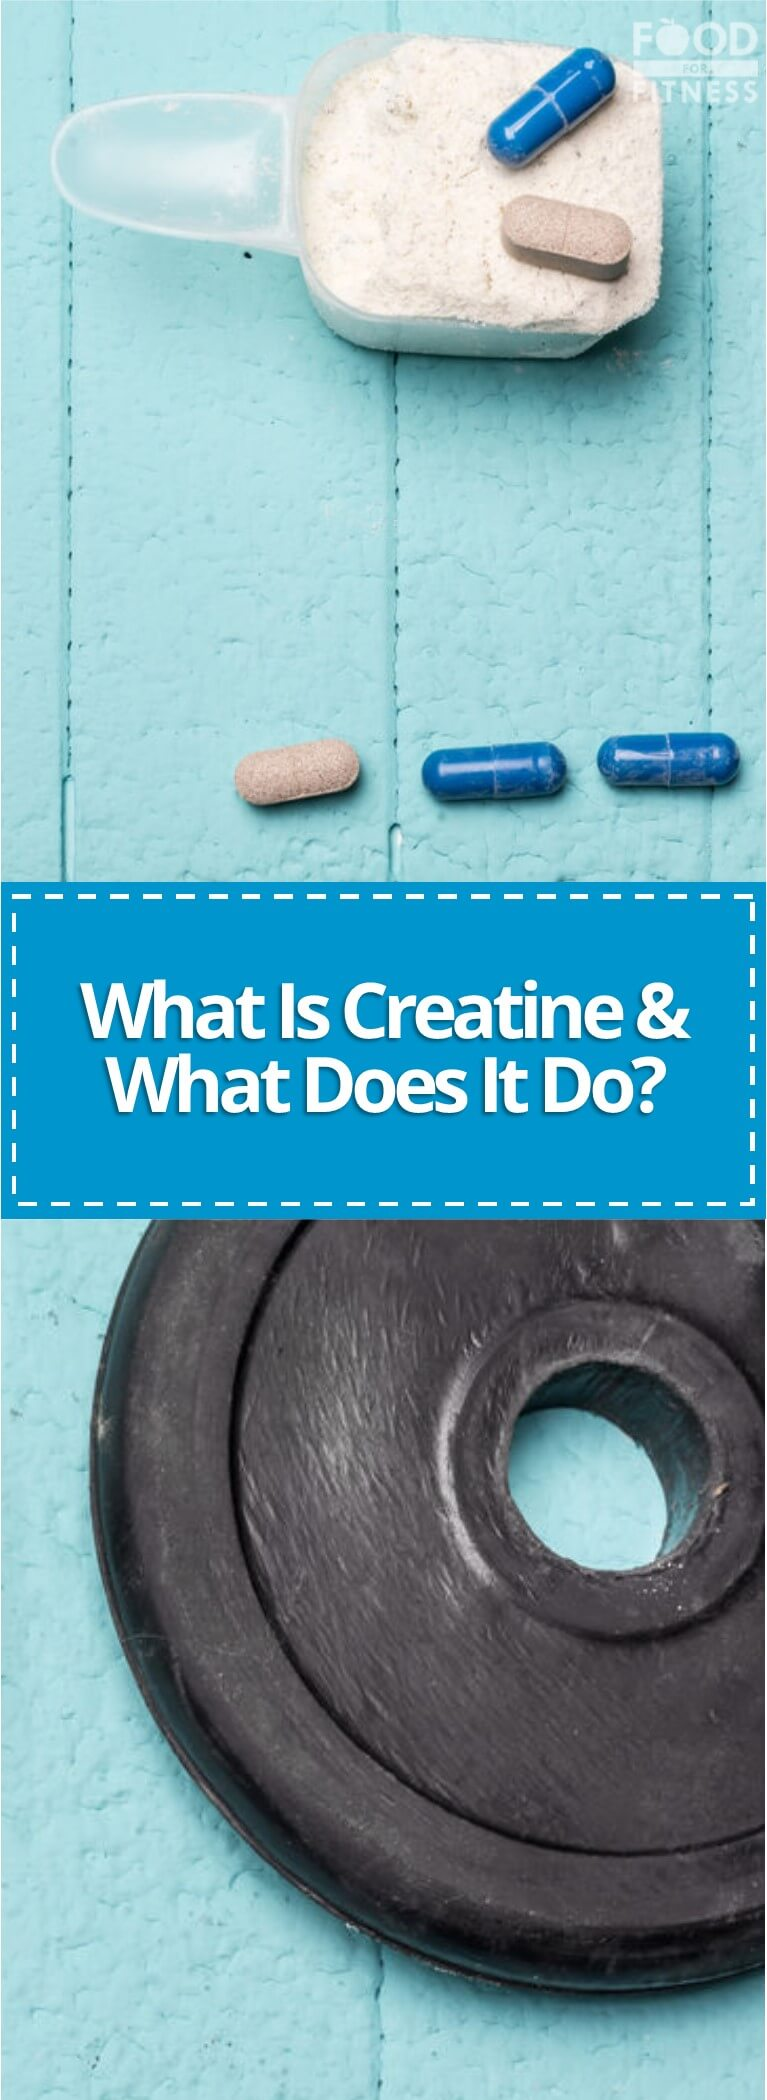 What is creatine? What are the benefits? Are there any side effects?